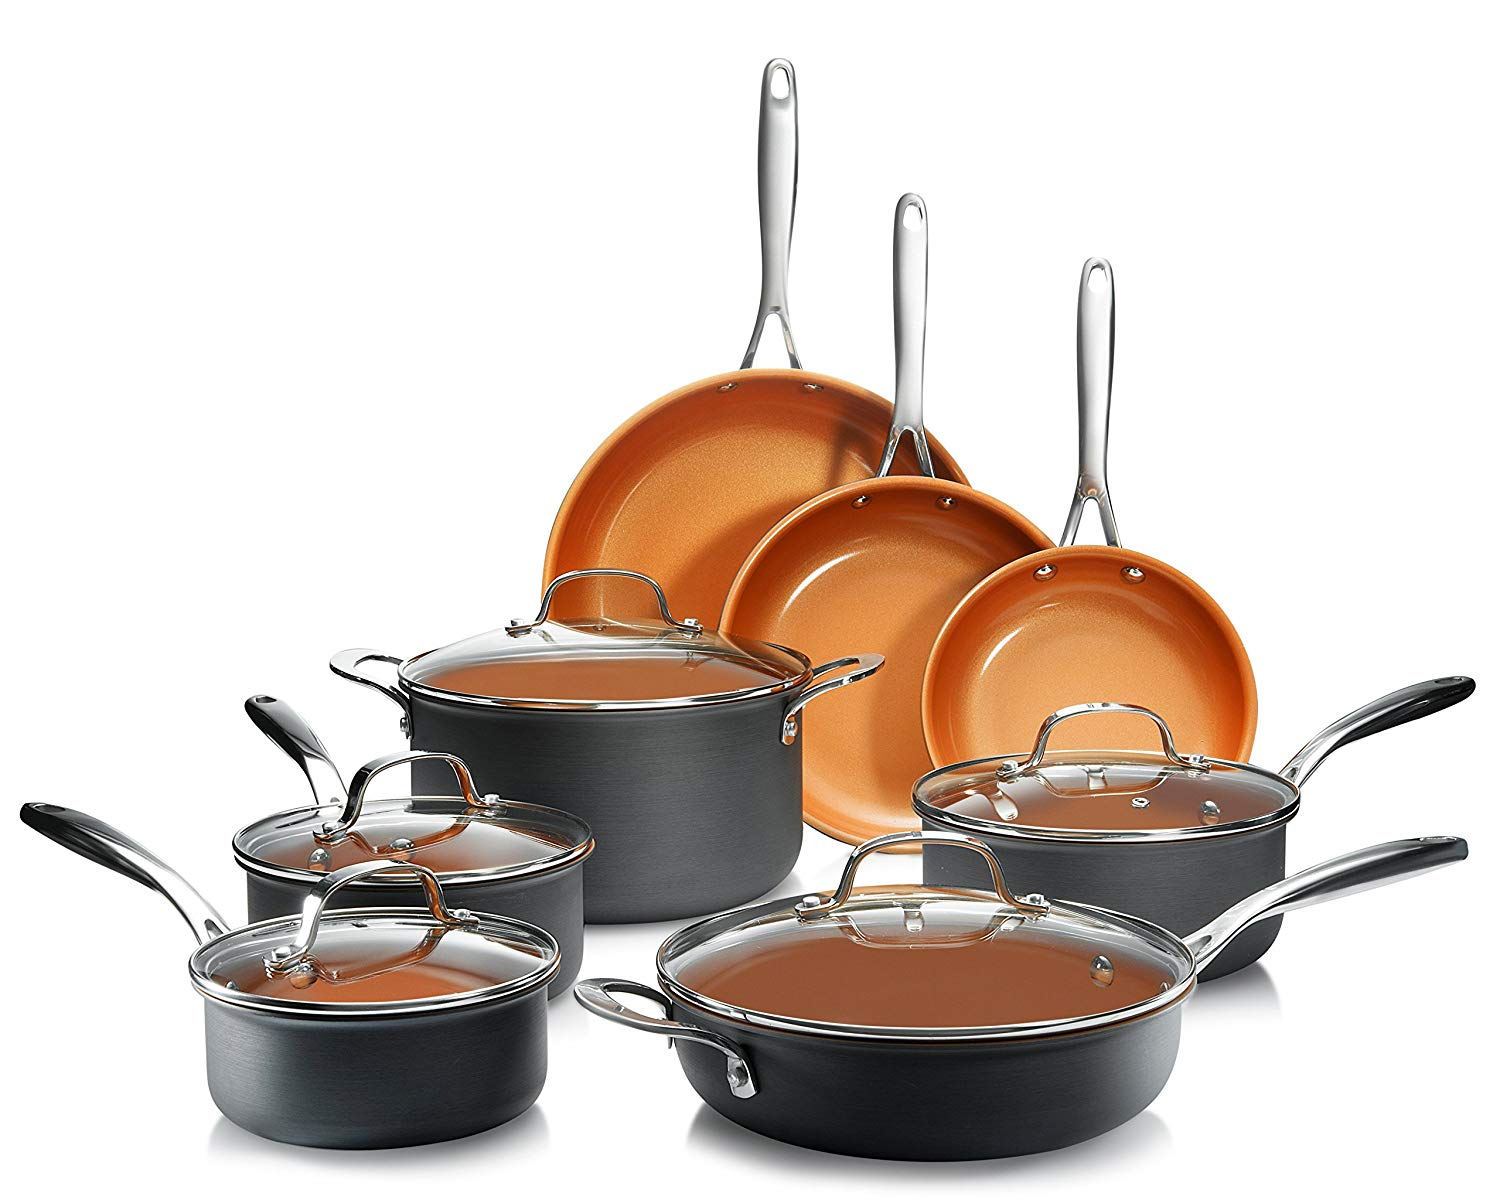 Gotham Steel Nonstick Ceramic Cookware Set, 13-Piece